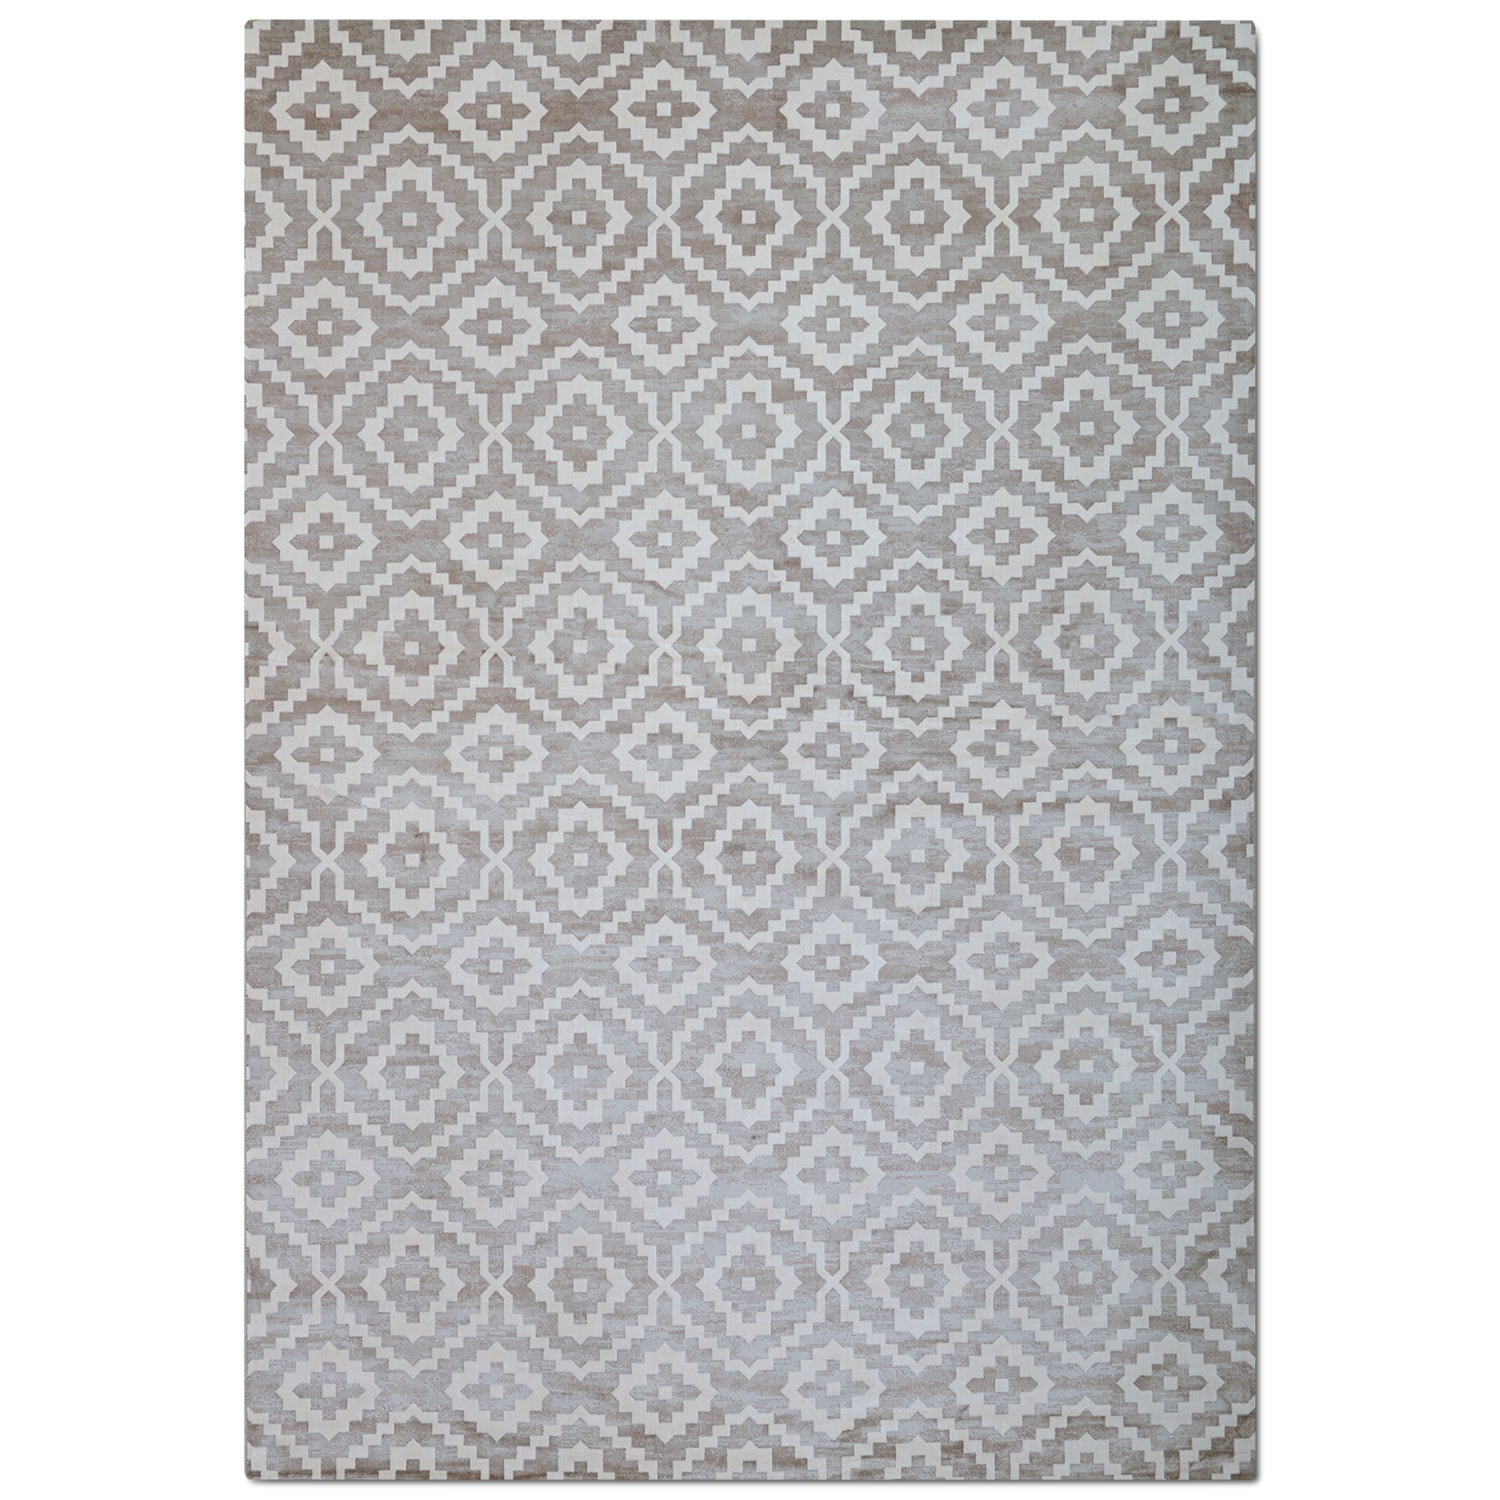 Rugs - Sonoma Area Rug - Silver